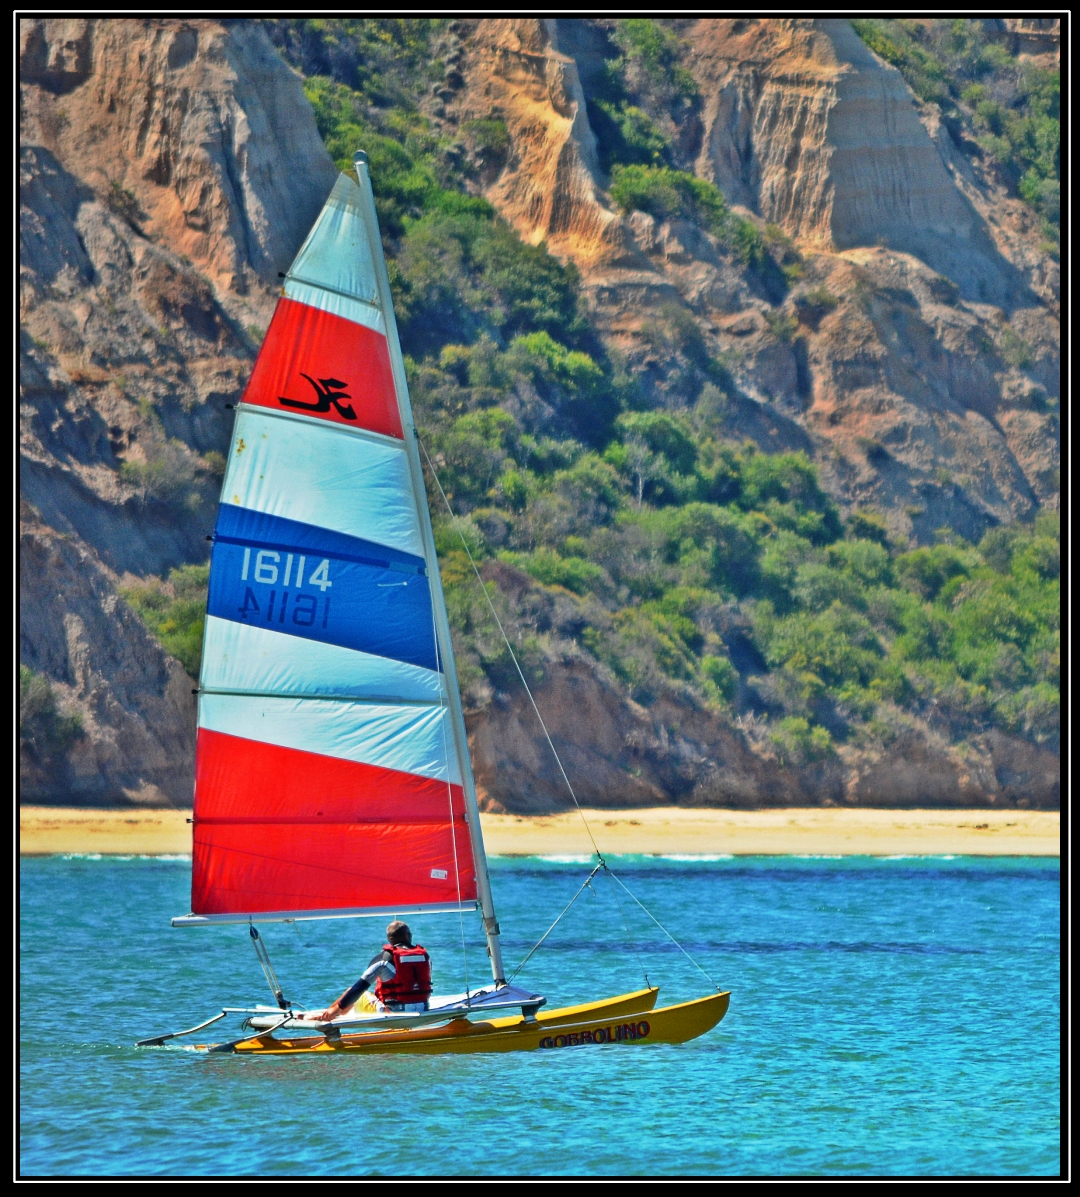 078_sailing-in-a-stiff-breeze-e8bf82e3466bba0787aa3bcef94e9eb2bb3b5a09